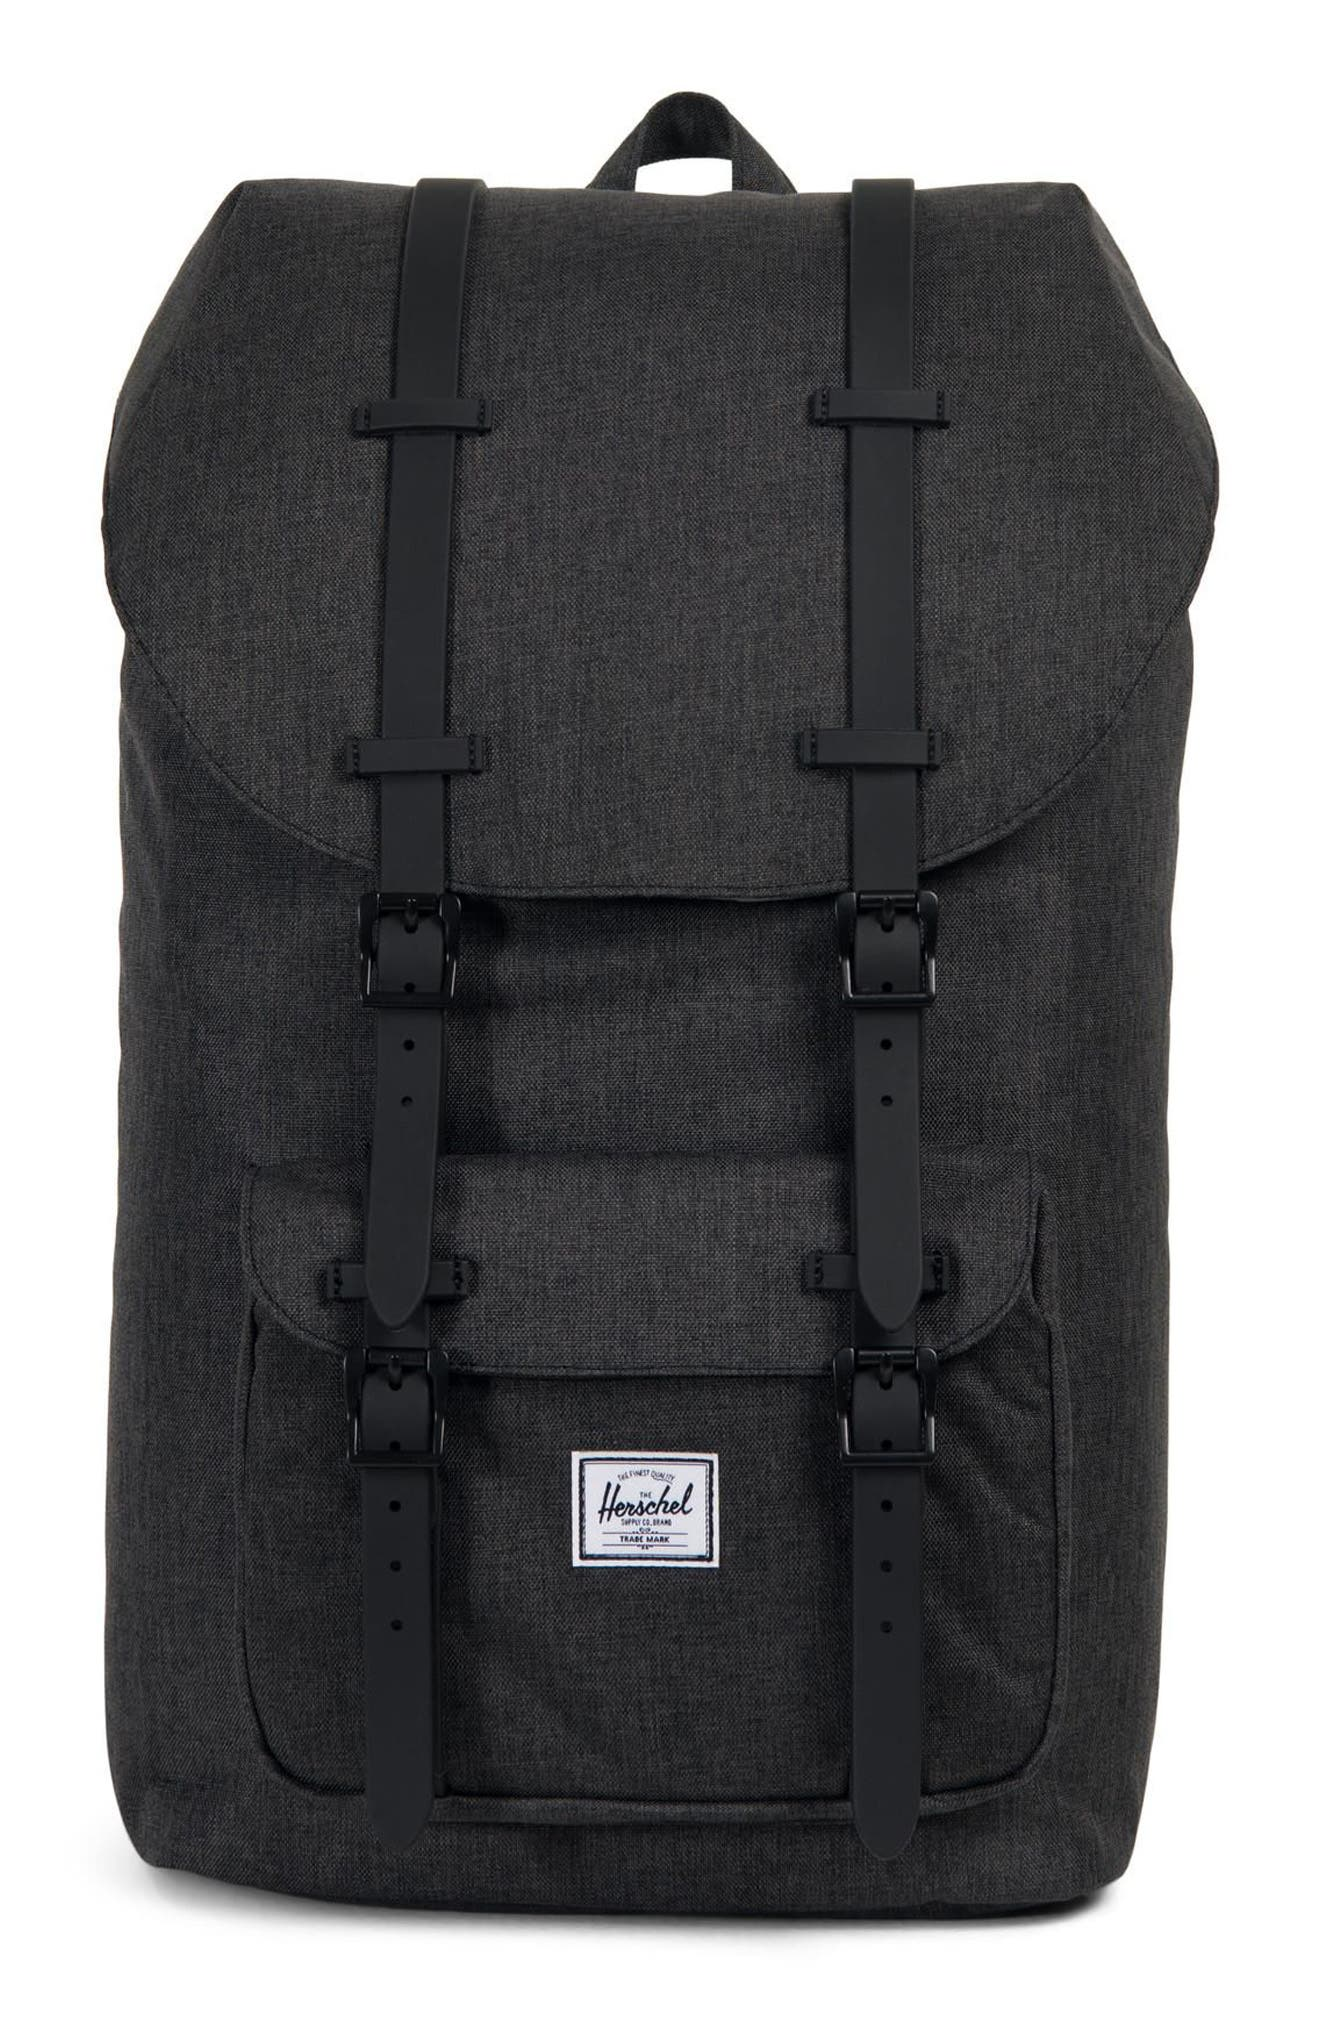 Little America Backpack - Black in Black Crosshatch/ Black Rubber